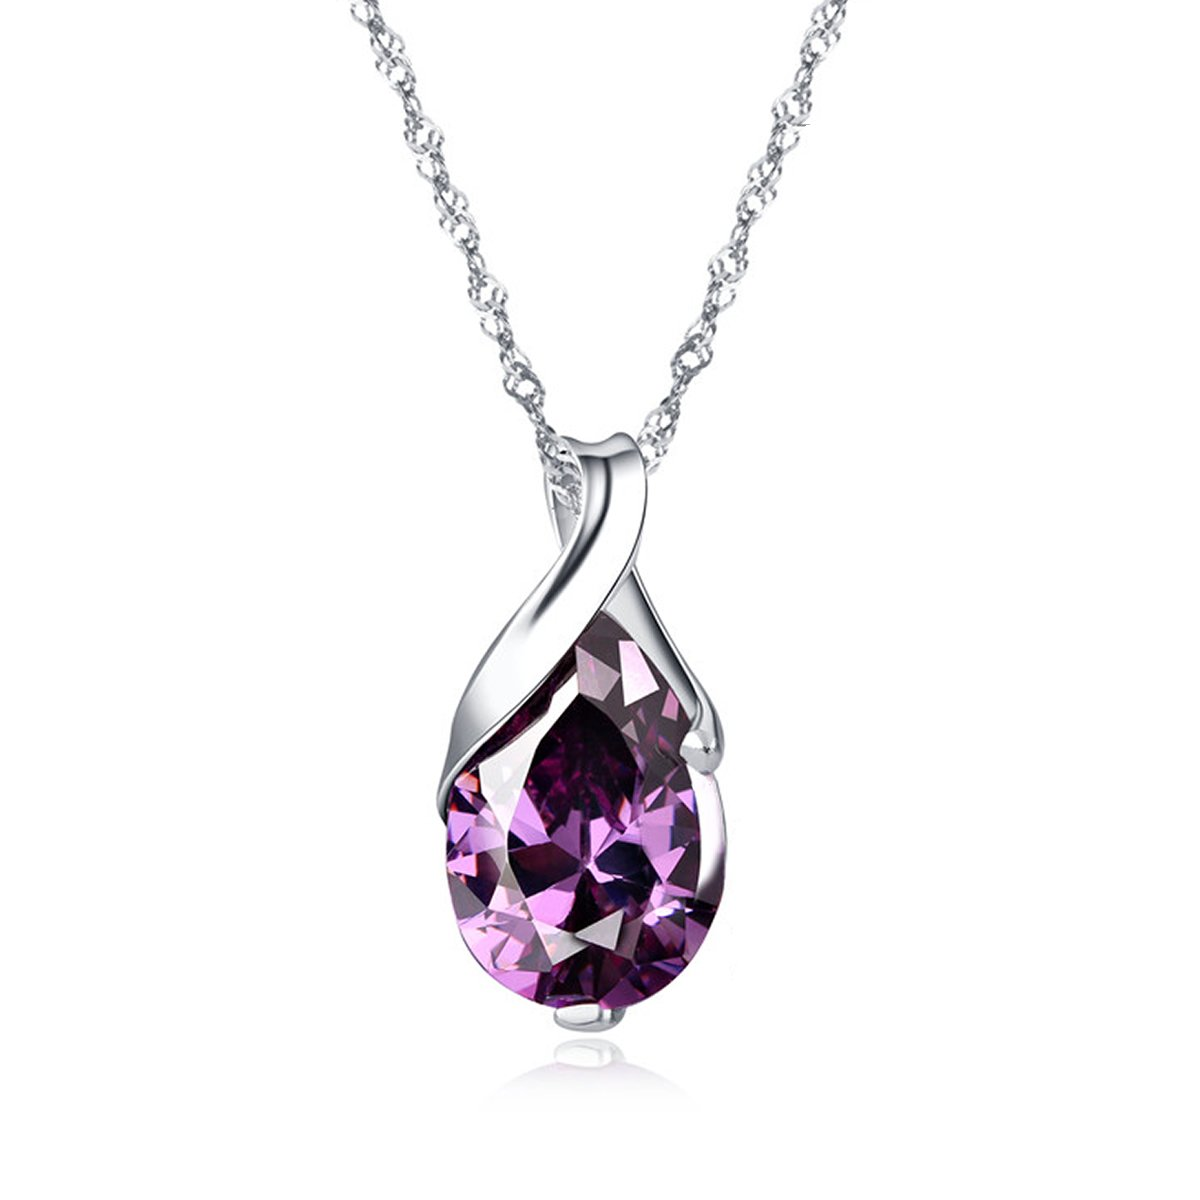 queen timepieces amina chris necklace aire jewellery jewelry fine amethyst ueen products